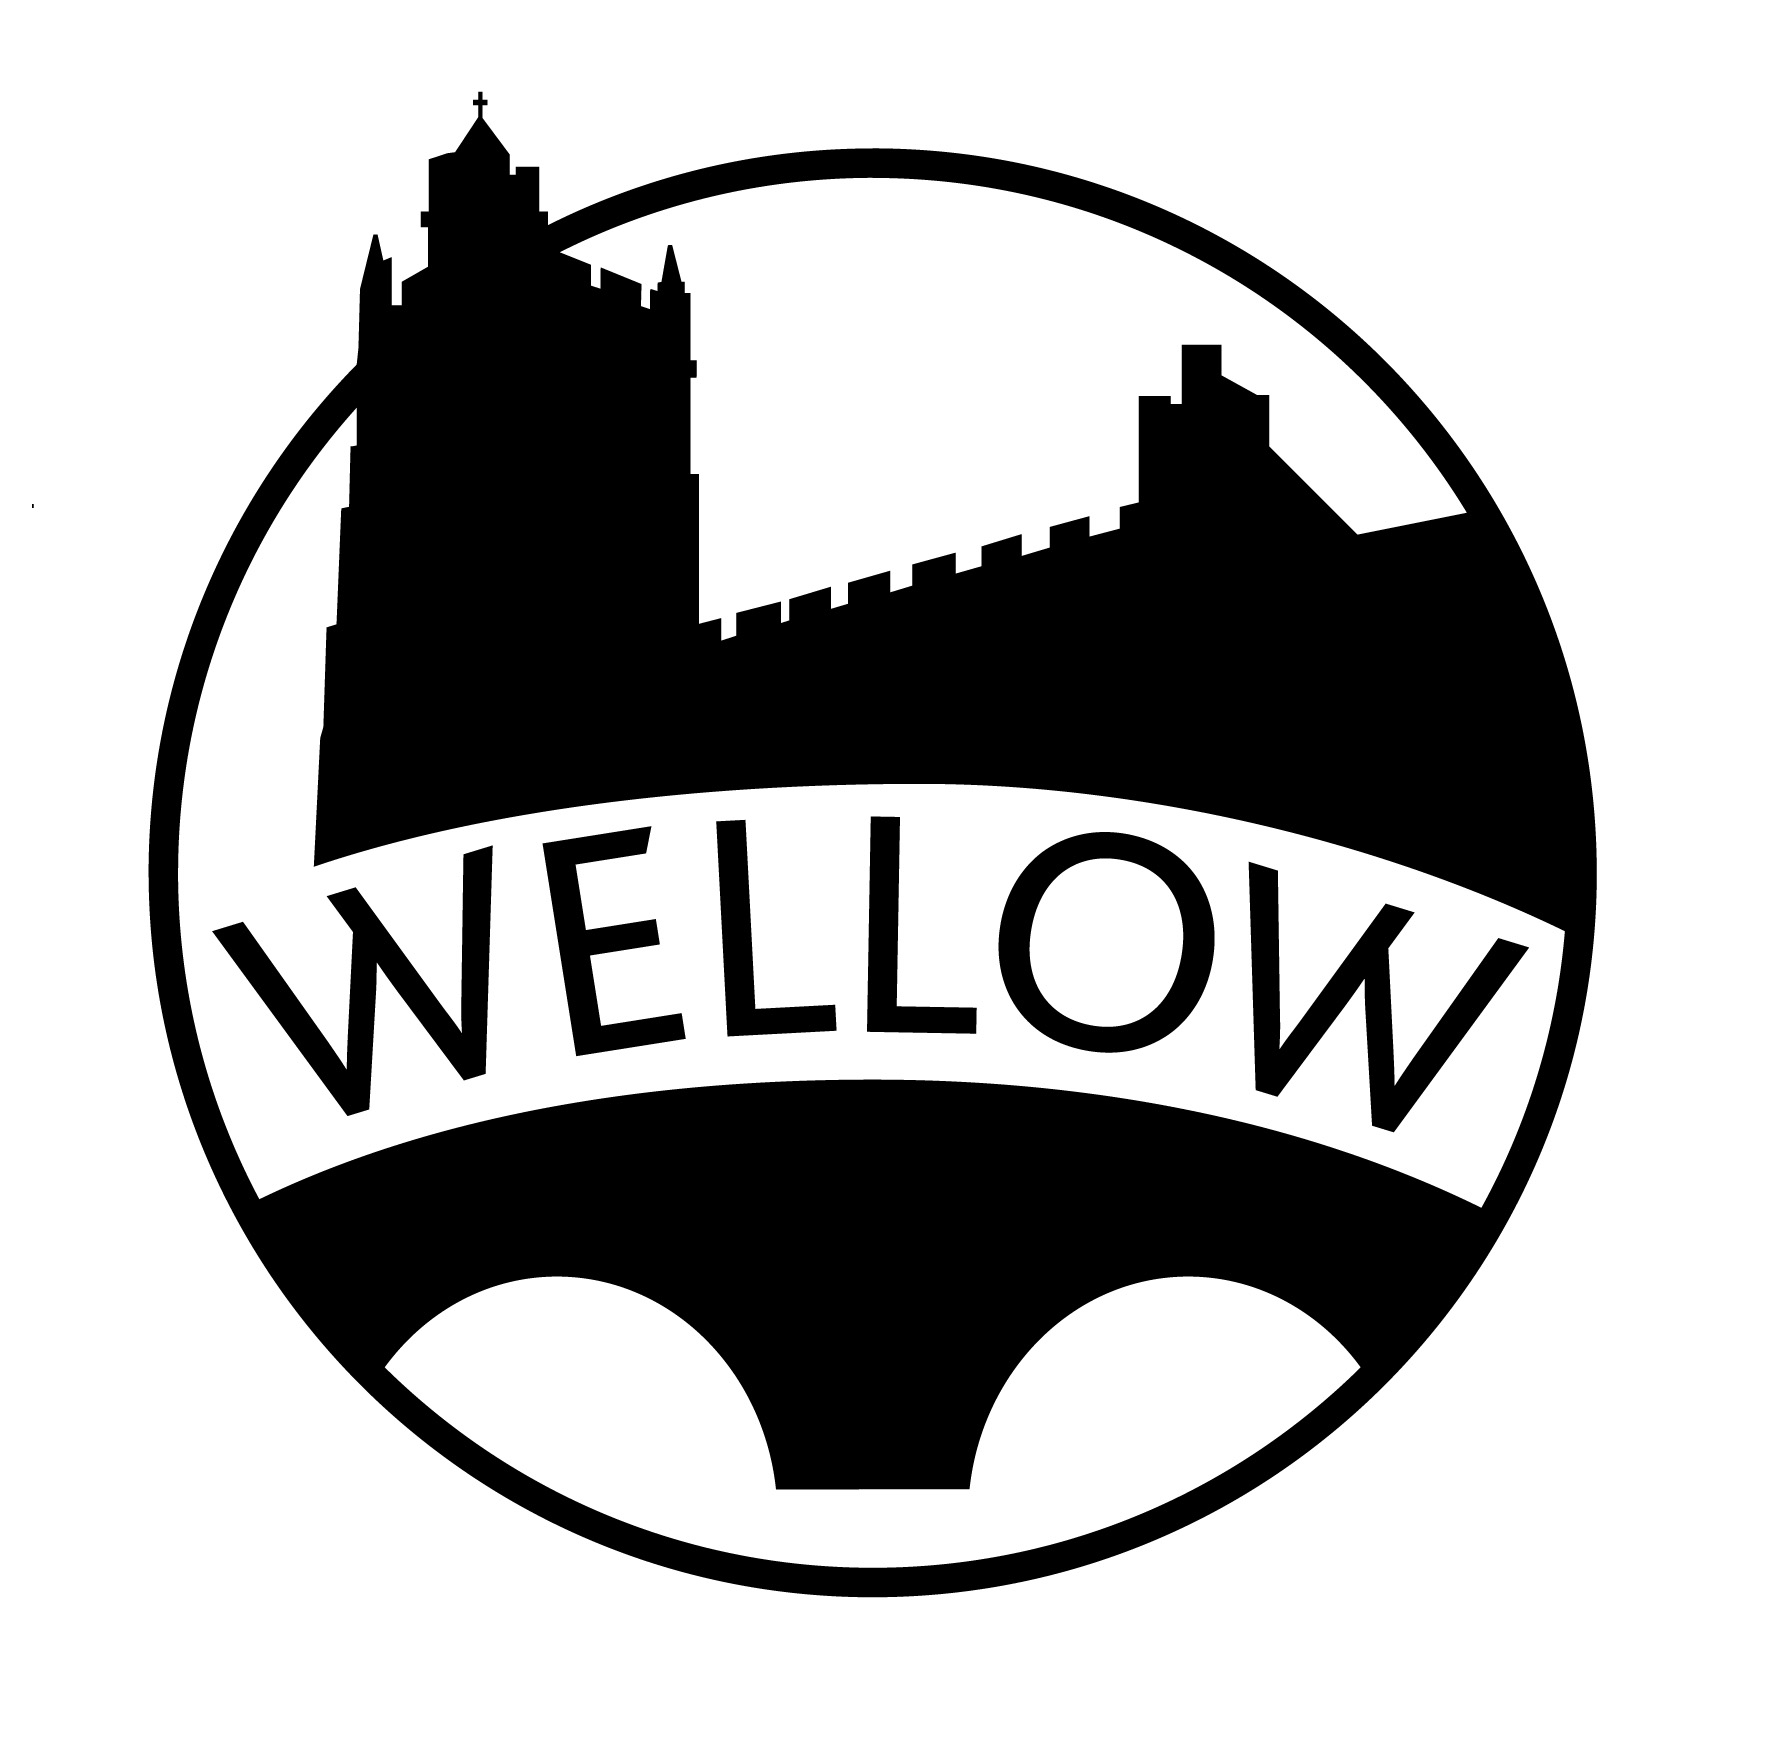 WellowLogoBIG.jpg - 152.9 KB